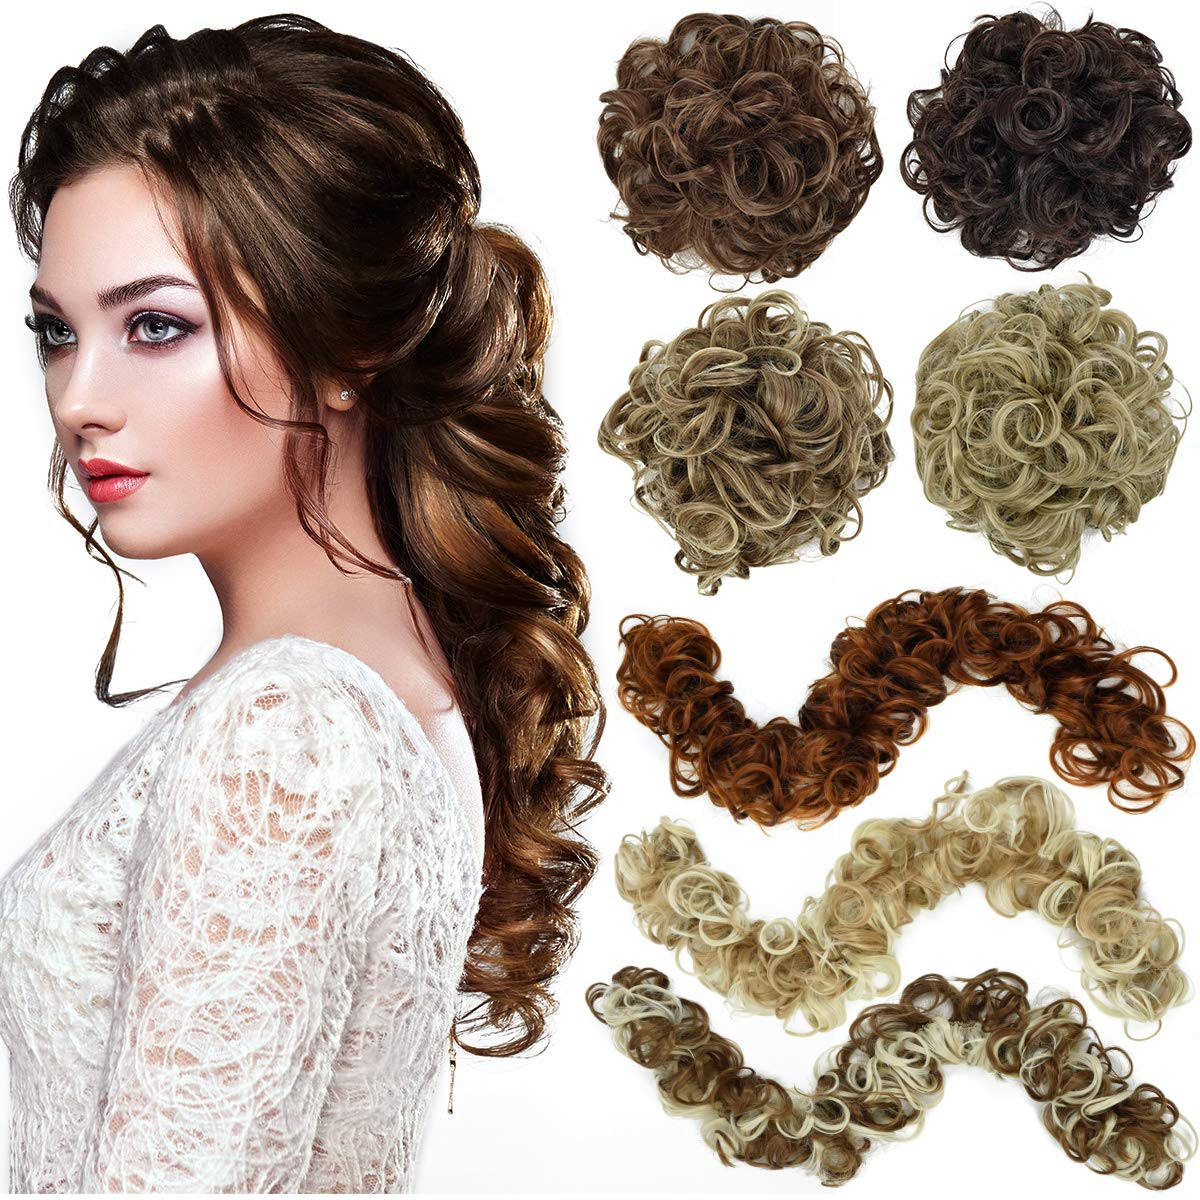 EMERLY Messy Bun Hair Piece Thick Scrunchy DIY Wrap Around Touseld Updo Hair Extensions Ponytail Curly Hair Pieces for Women